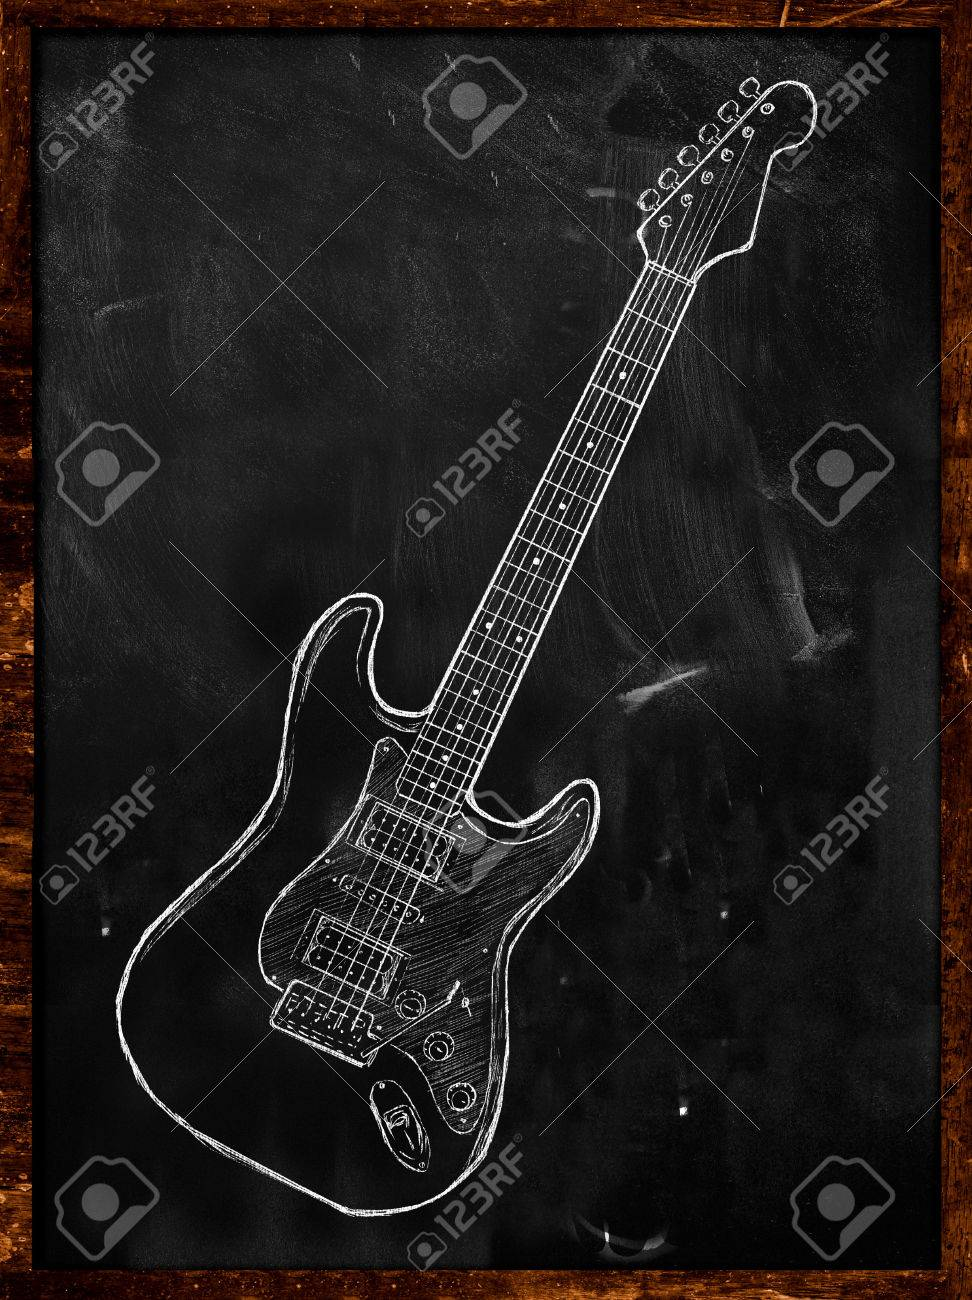 972x1300 Electric Guitar Drawing On Blackboard Stock Photo, Picture